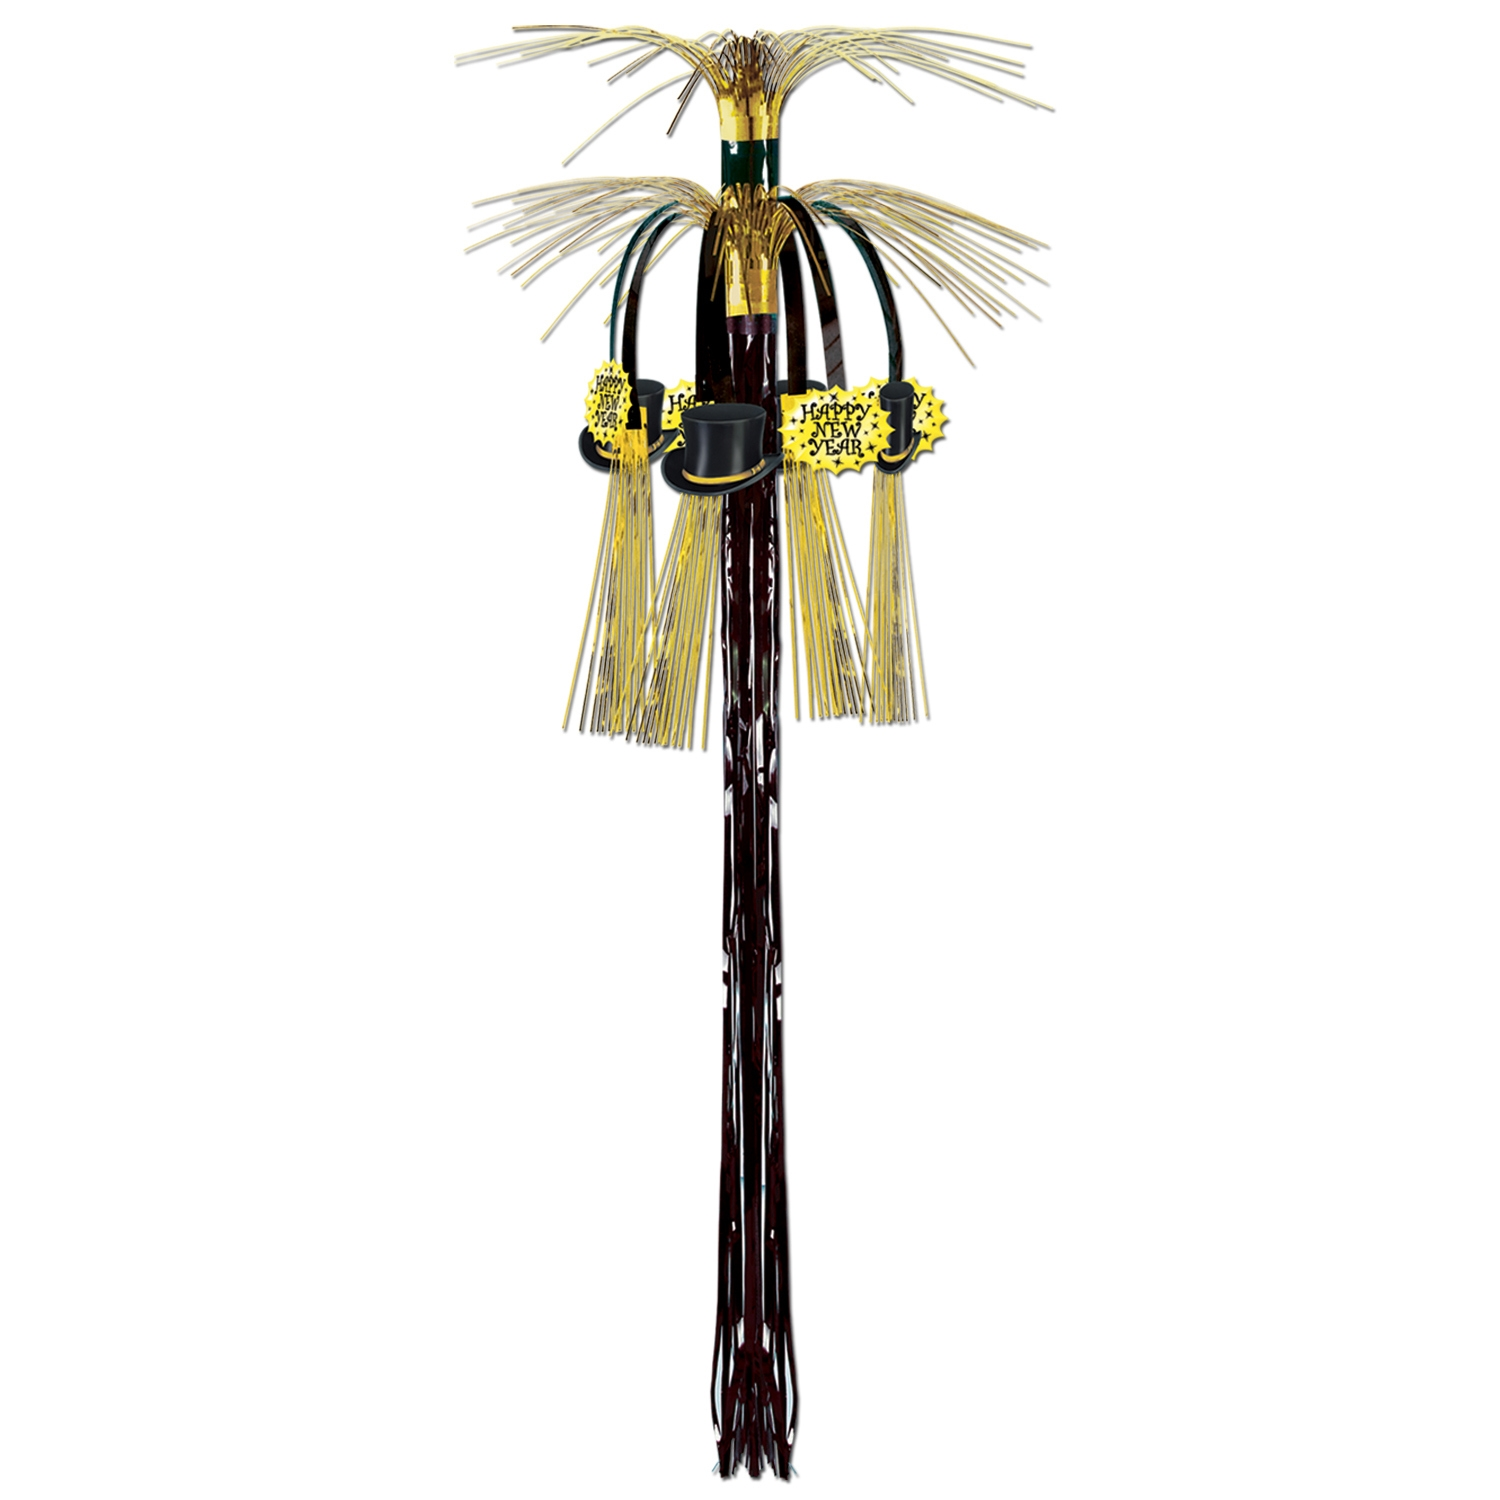 Cascade hanging column made from black and gold metallic material with top hat and Happy New Year icons.